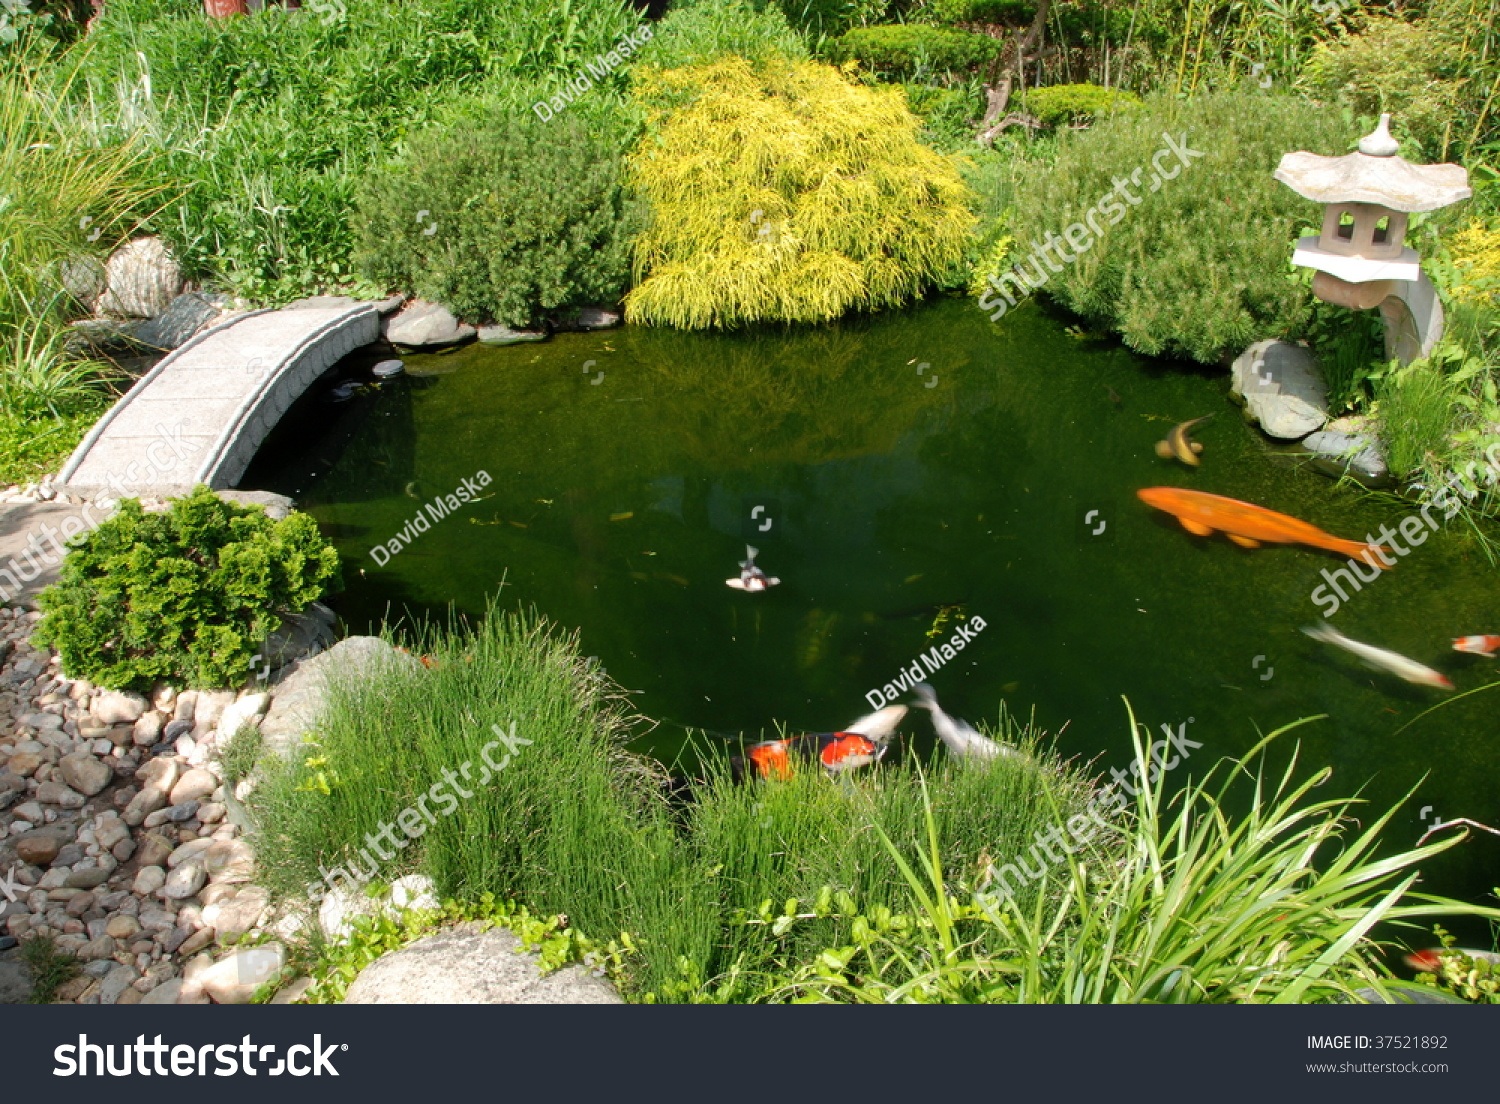 Koi fish in a pond of a beautiful japanese garden stock for Koi pond supply of japan